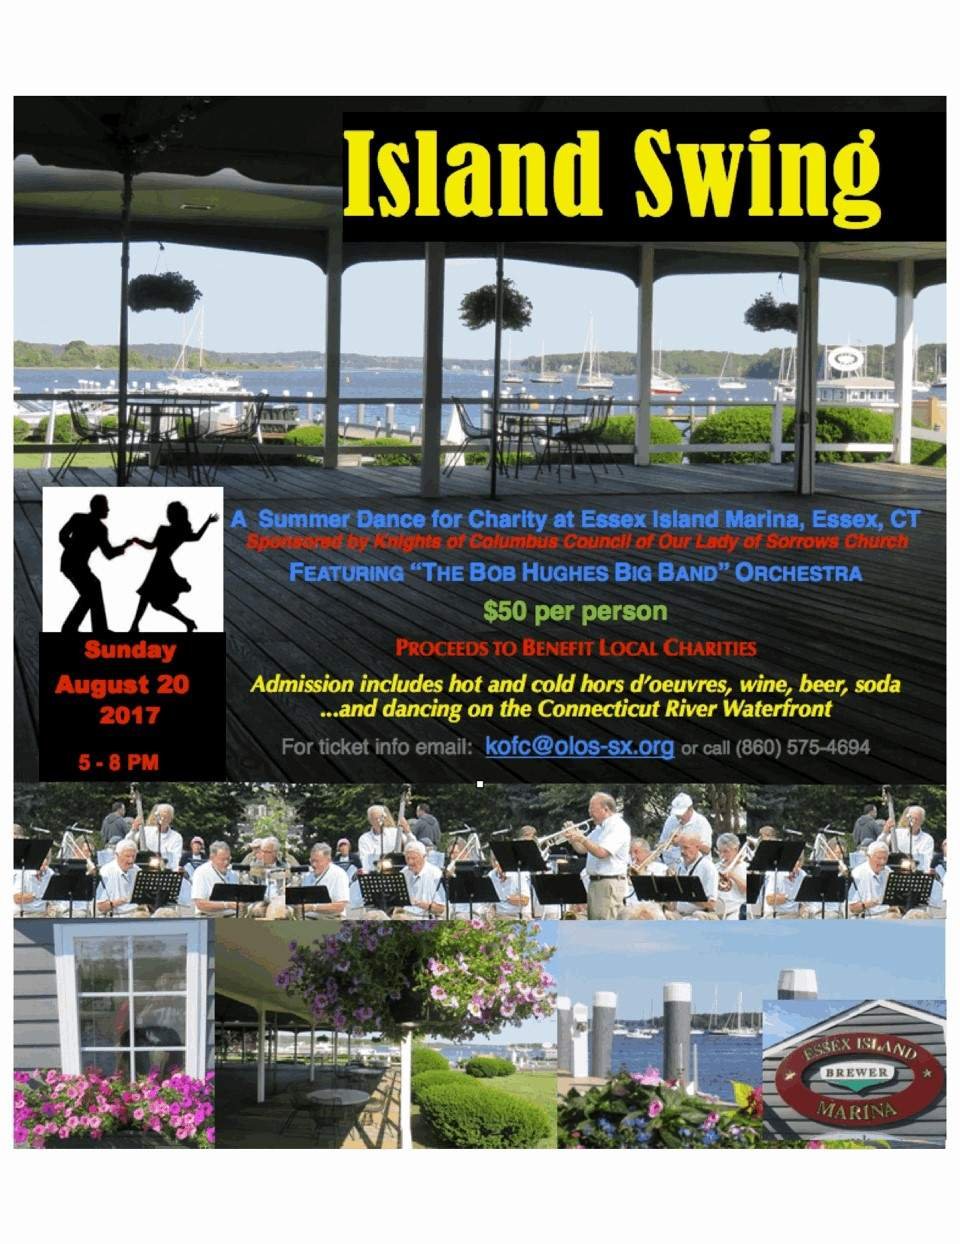 Big Band Swing Music at Brewers Essex Island Marina